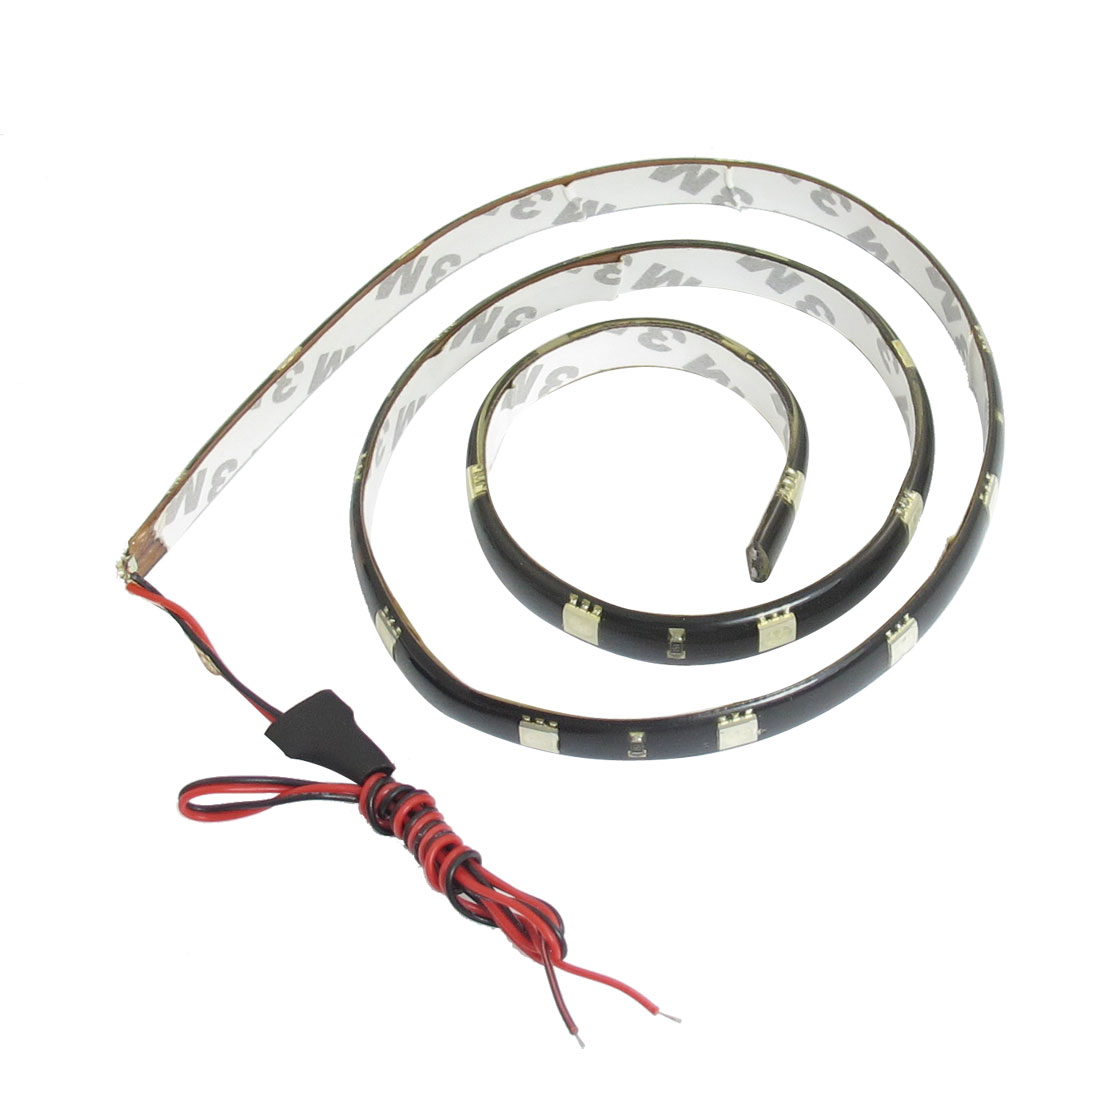 60cm Length 5050 SMD Colorful LED Flexible Bar Strip for Auto Car